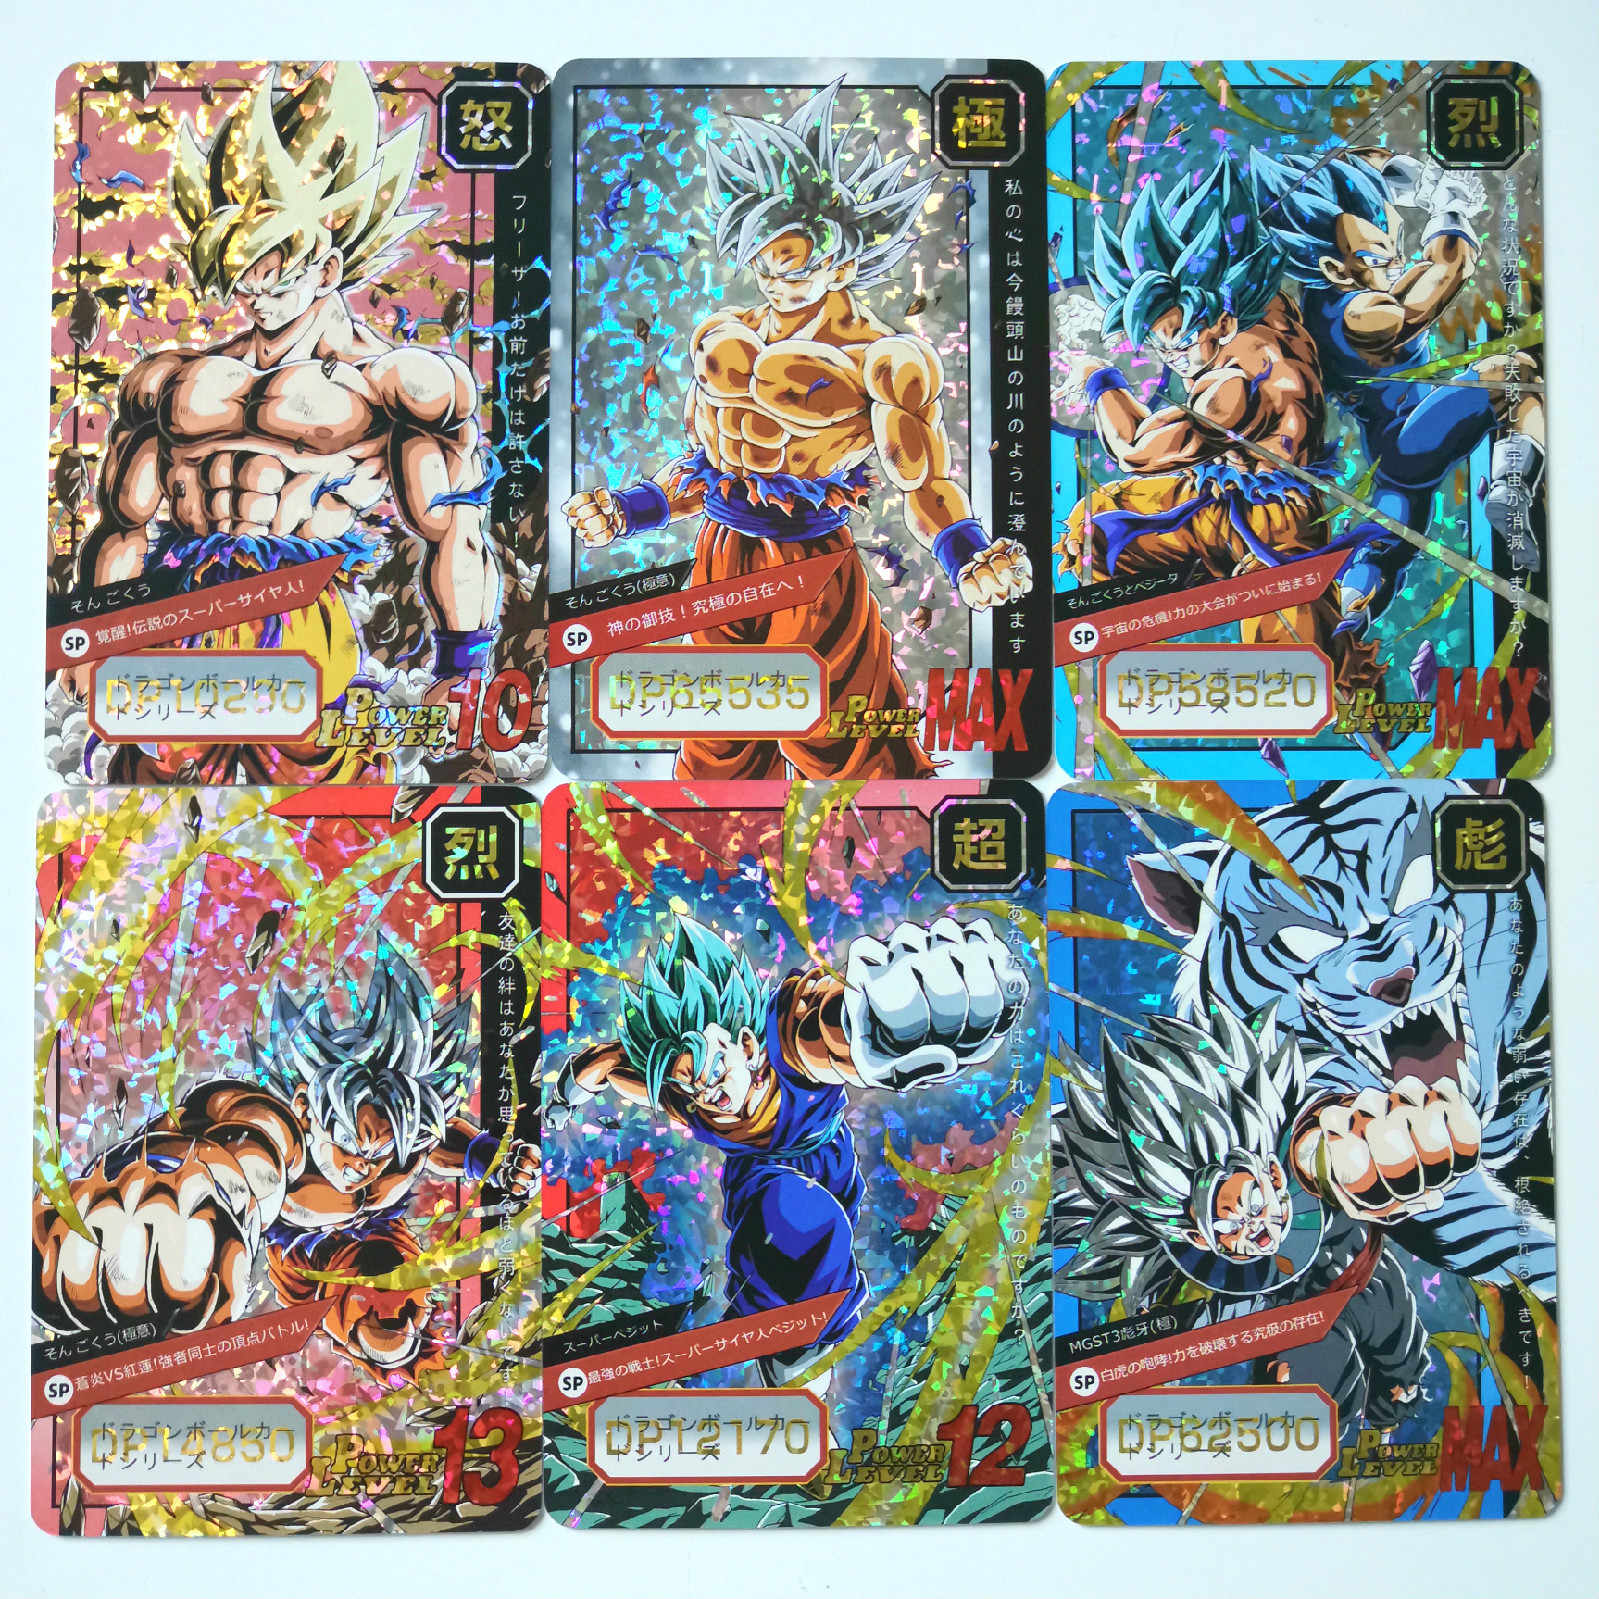 24pcs Super Dragon Ball Z Fine Limited Card Heroes Battle Ultra Instinct Goku Vegeta Game Collection Cards